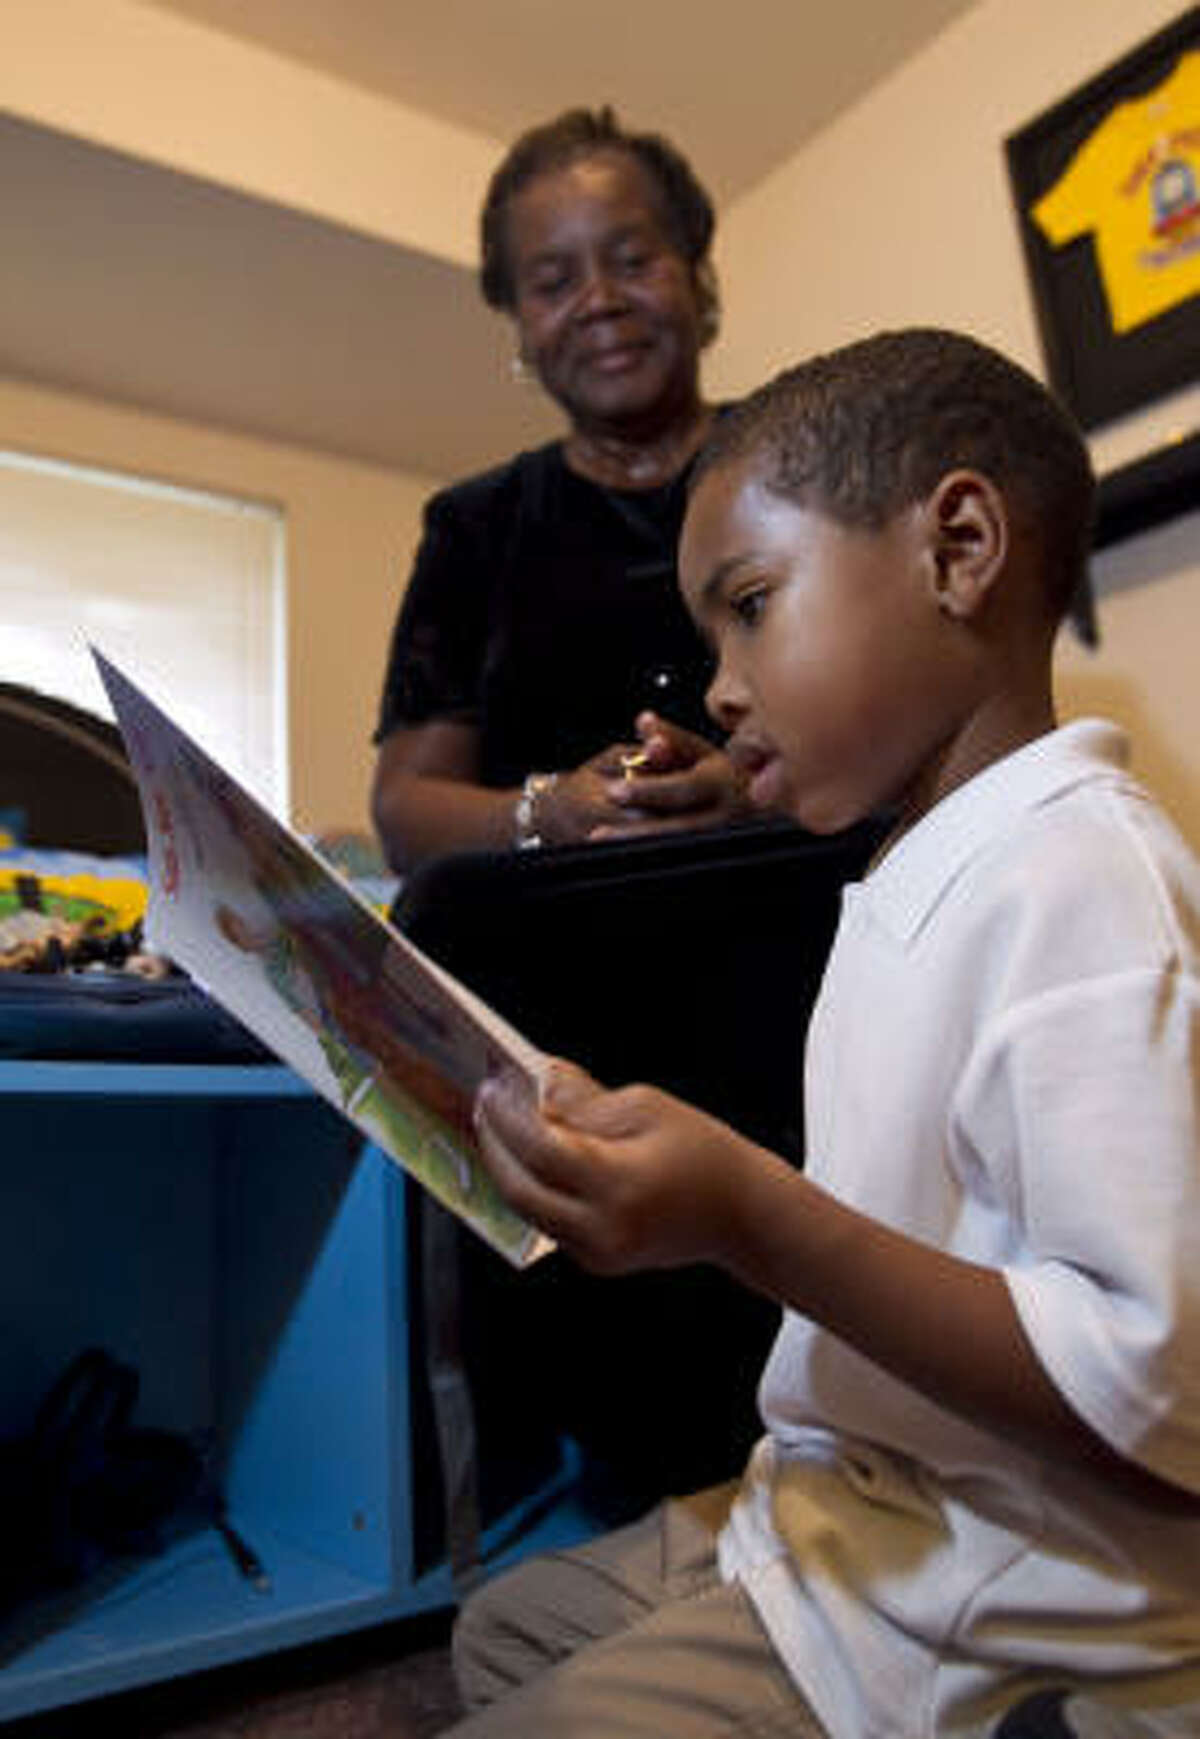 Five-year-old Thomas DuBose reads to his grandmother Doris Marie Thomas at her home Friday in Houston.